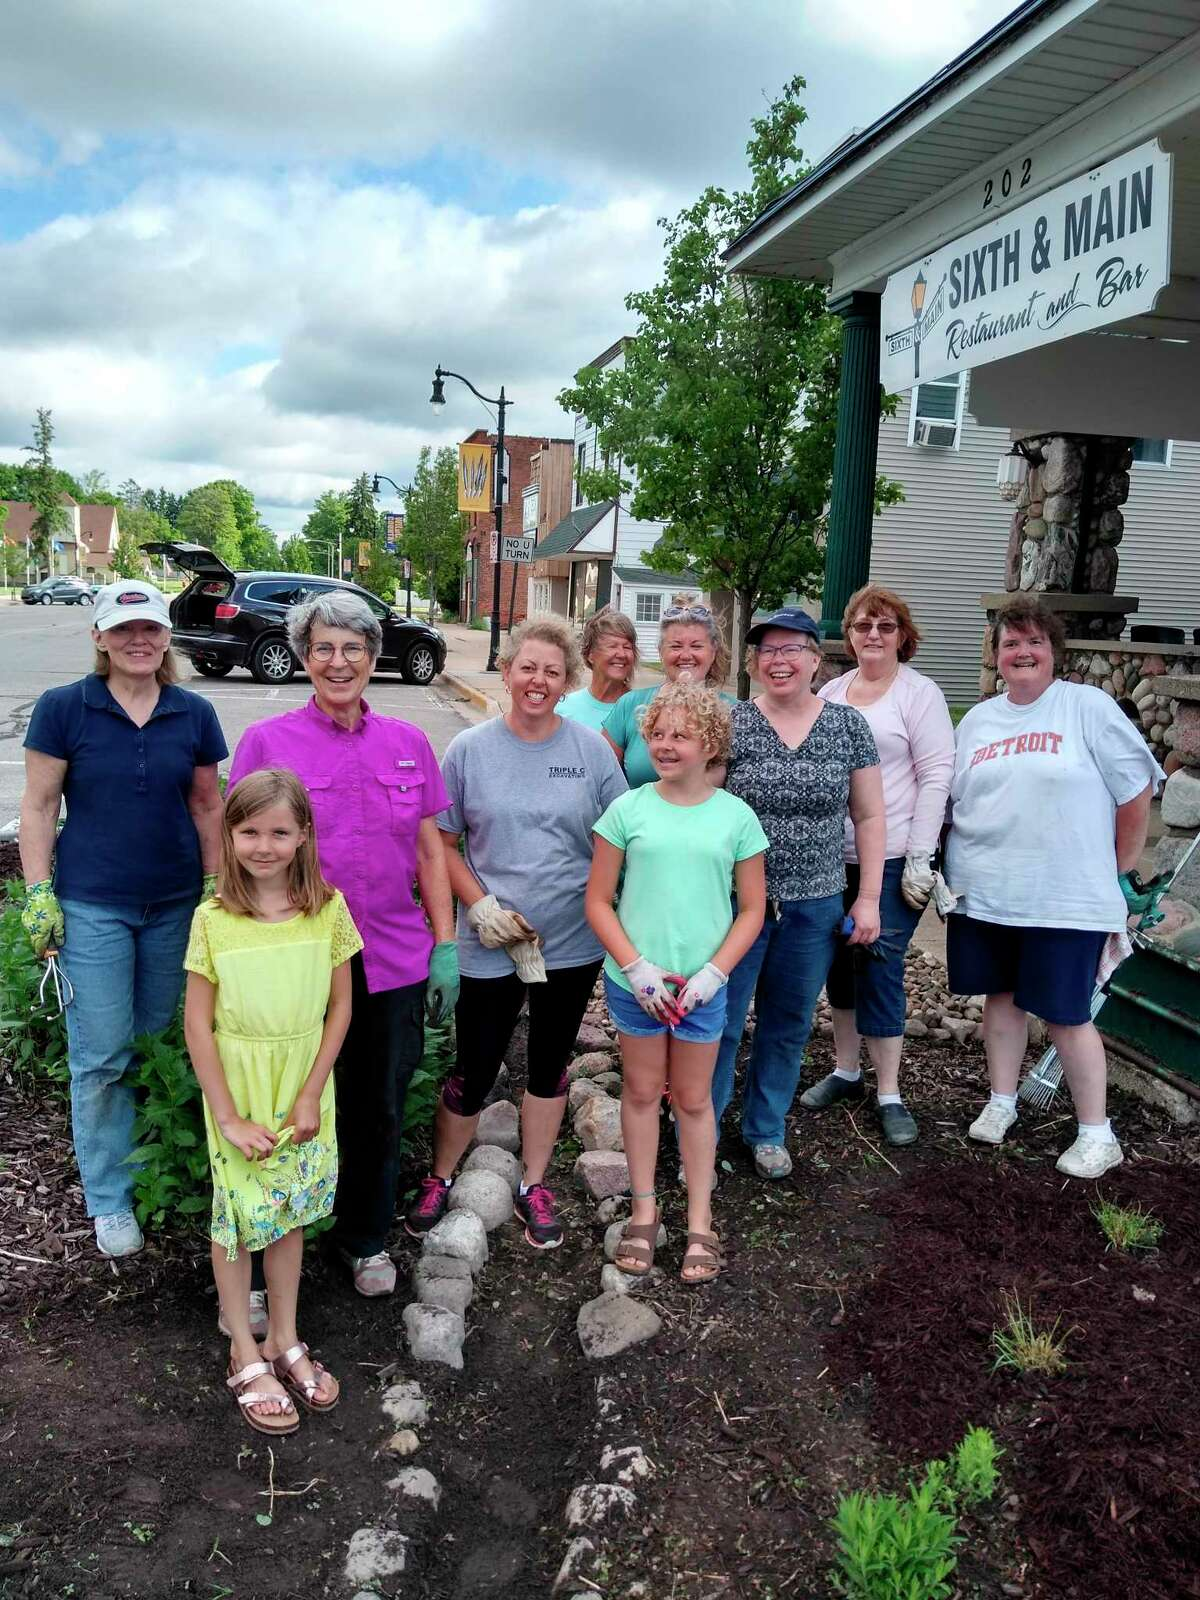 The Evart Garden Club, along with other local volunteers, cleaned and replanted the bump-out flower beds in downtown Evart this past spring. The work will continue this coming spring as more plants are added. (Submitted photo)